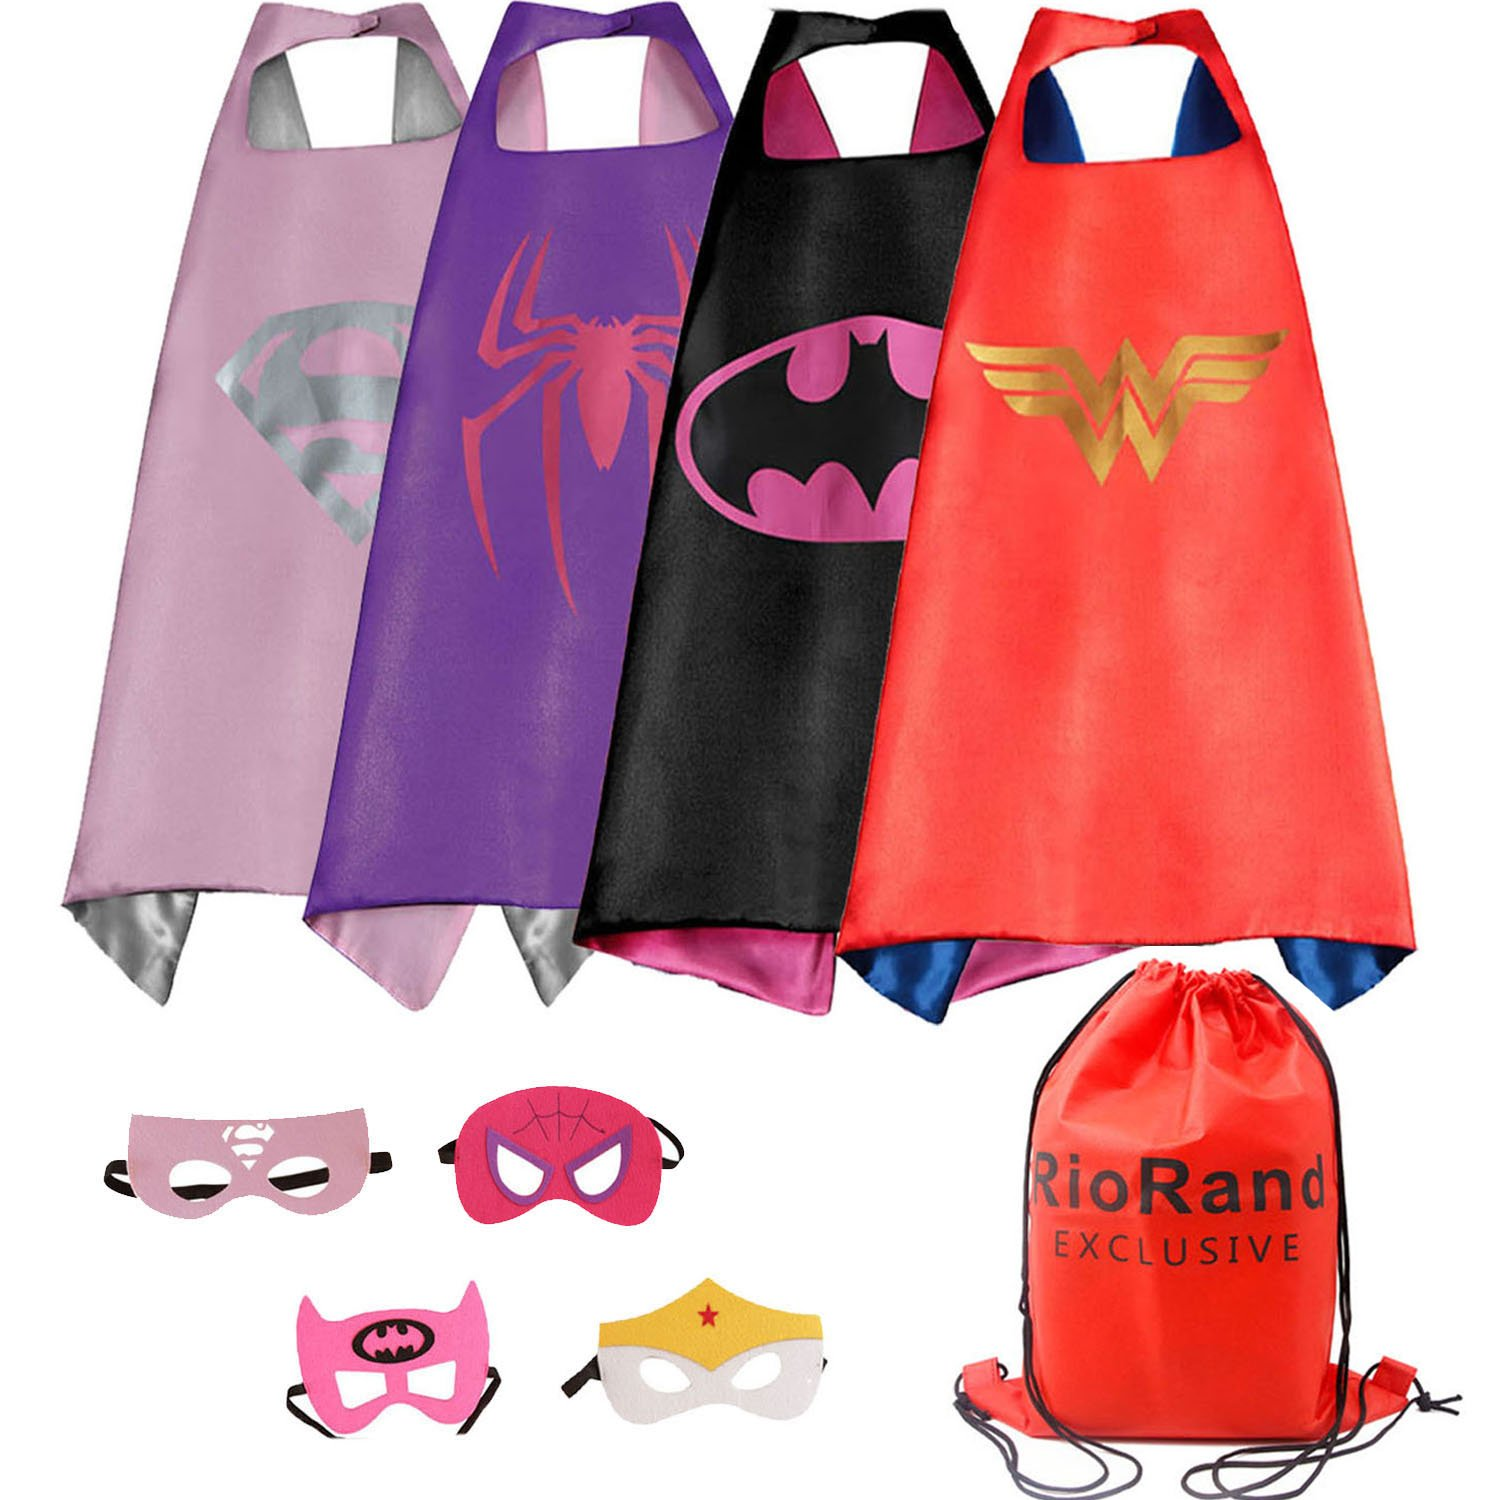 Dress Up Costumes Cartoon 4 Satin Capes With Felt Masks and Exclusive Bag For Girls